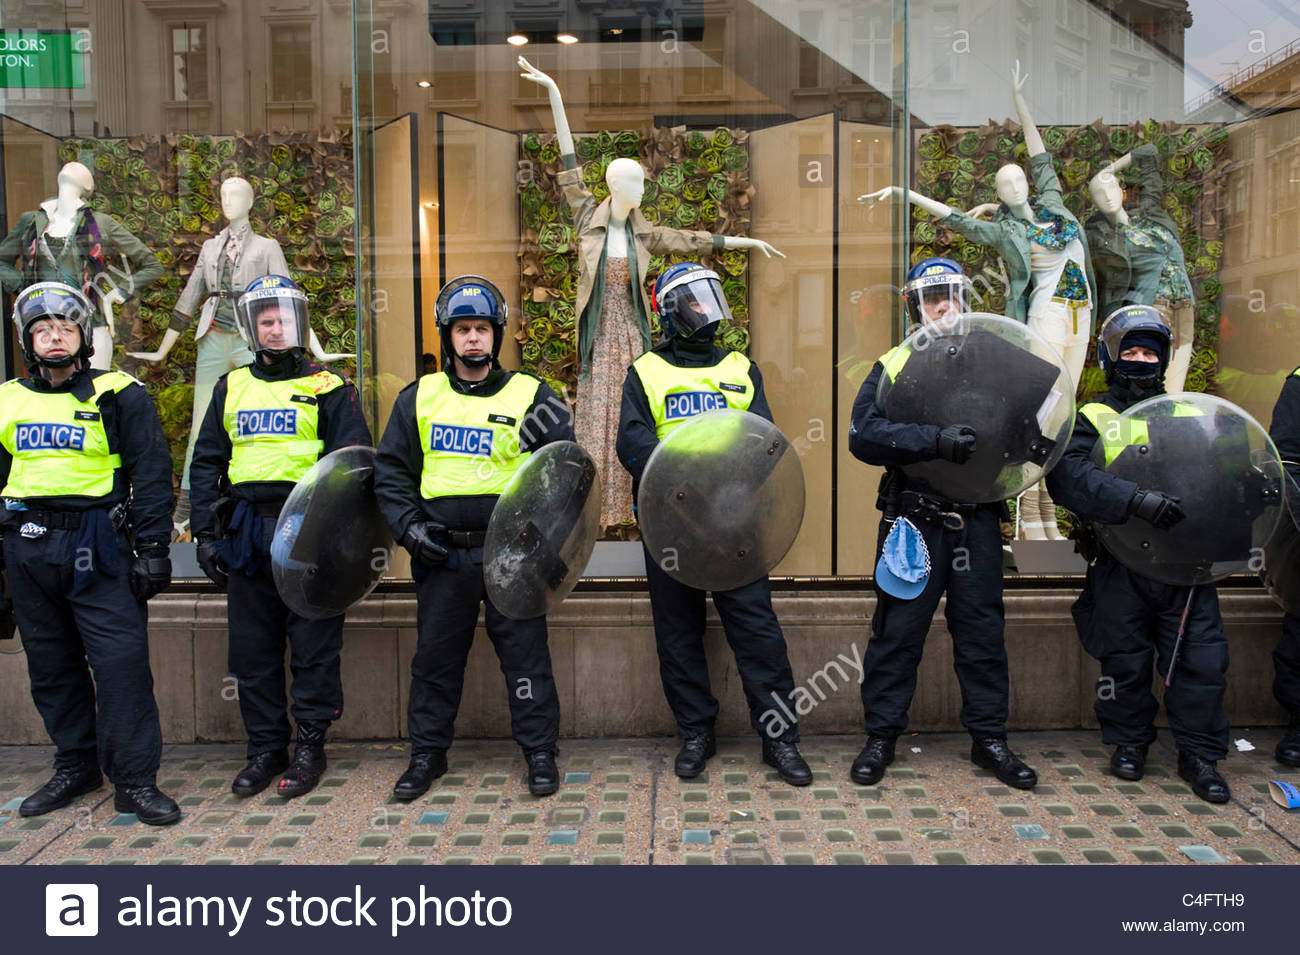 Line of riot police protecting shop during protest march, London, UK - Stock Image